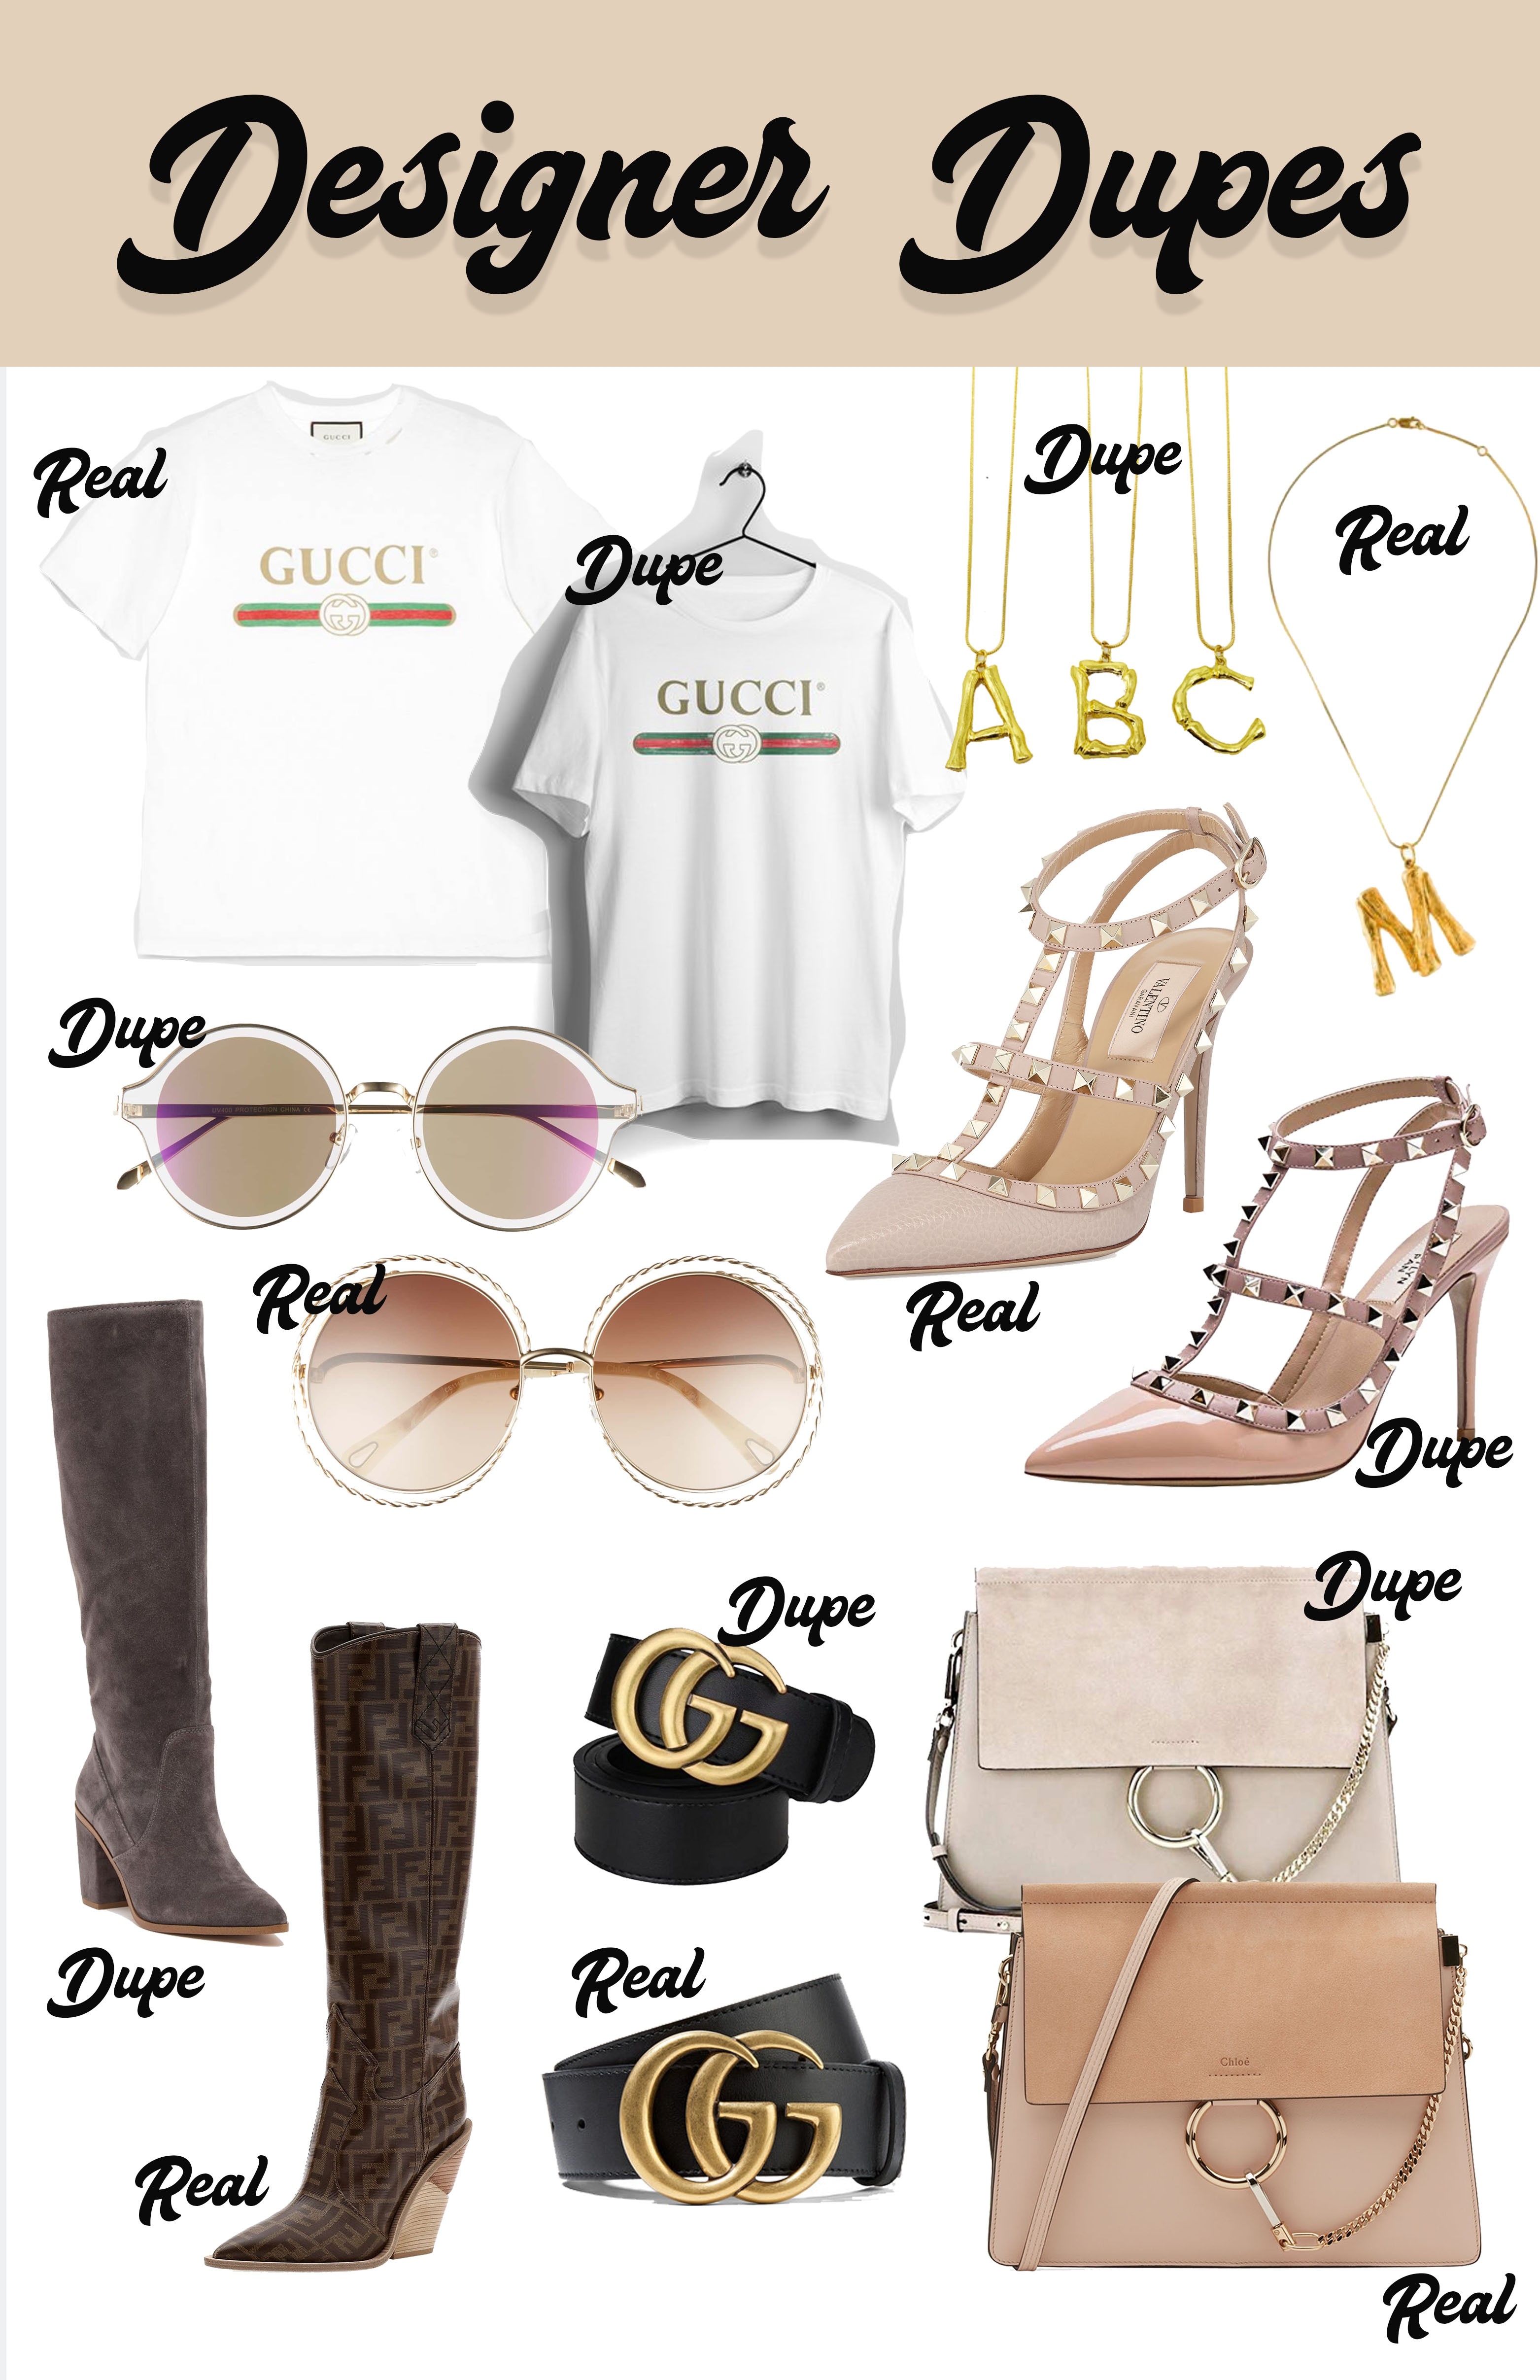 cba063e37181 Here we go... the moment you ve been waiting for! Below I have my favorite  designer dupe combos